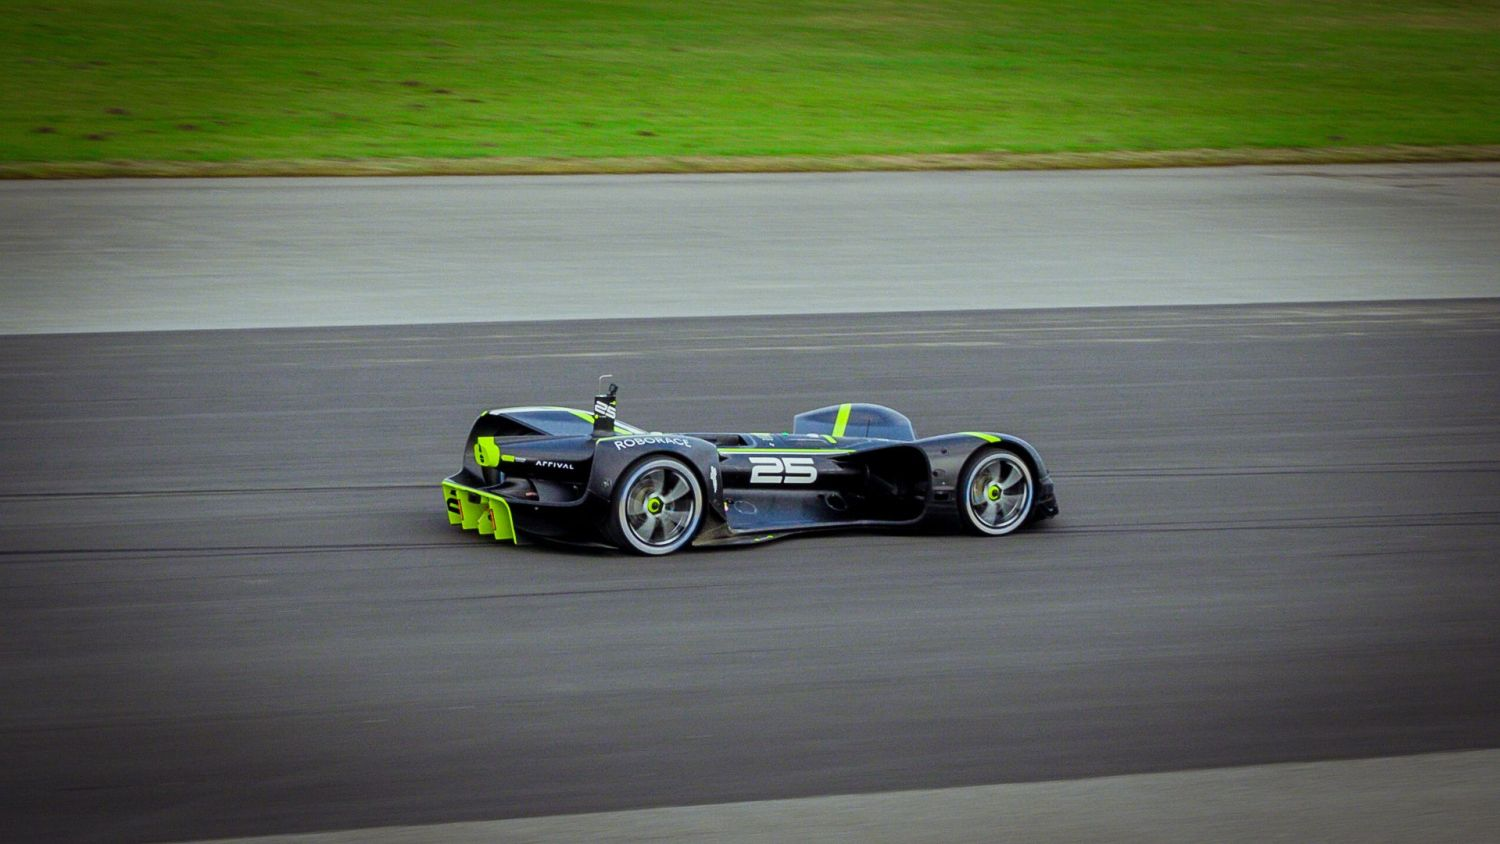 Roborace Robocar is the fastest autonomous vehicle